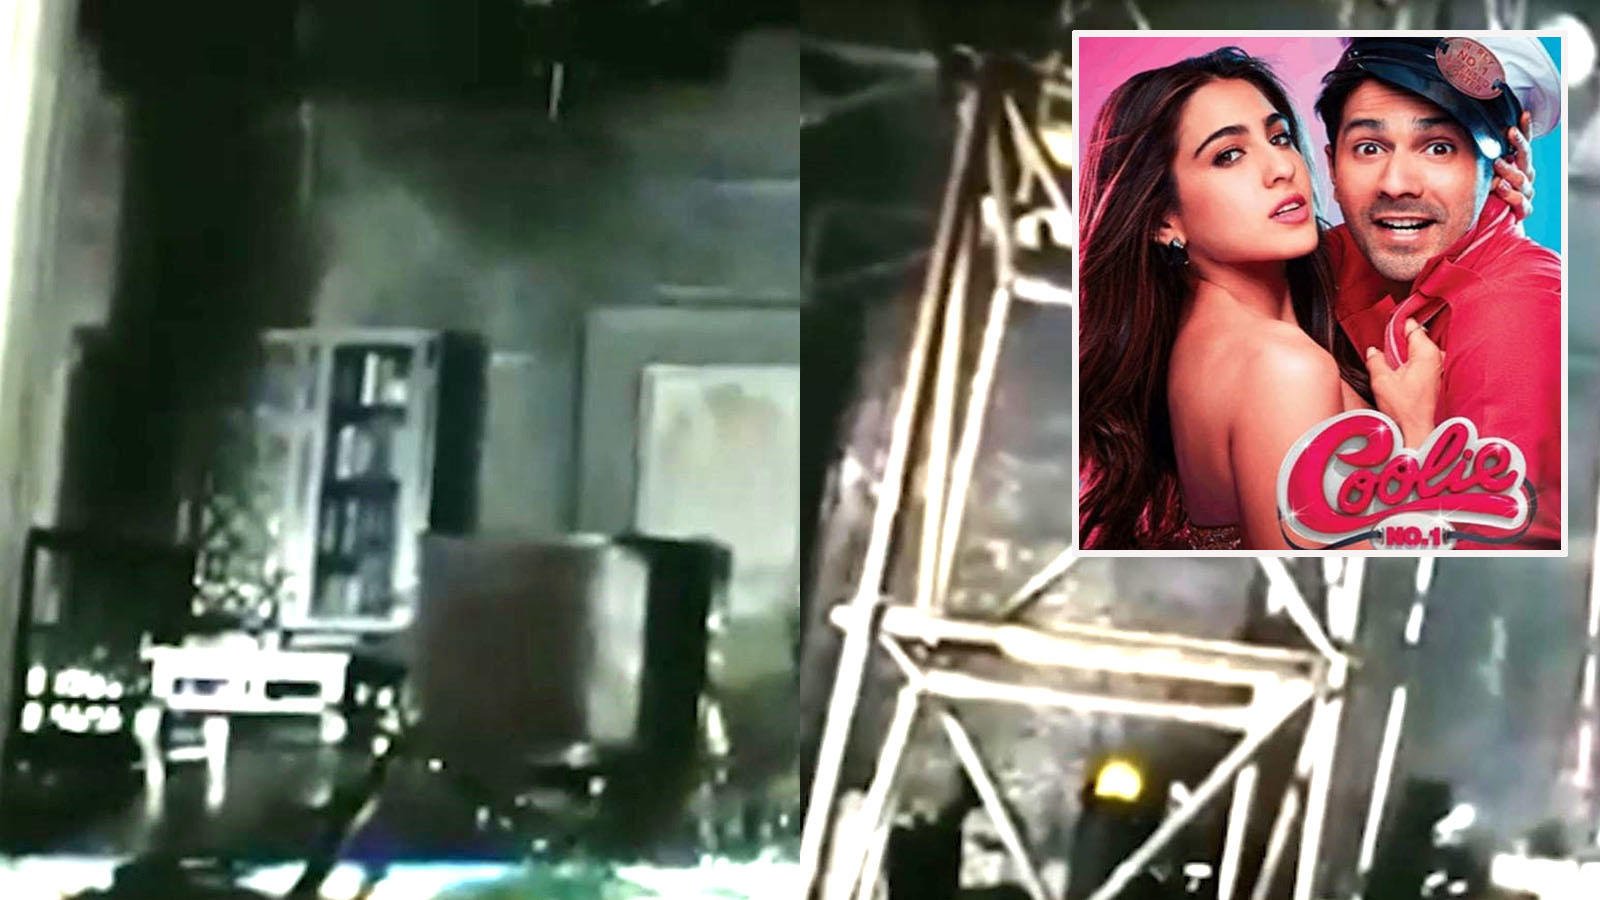 Massive fire breaks out on the sets of Varun Dhawan and Sara Ali Khan starrer 'Coolie No. 1' in Mumbai, no casualty reported